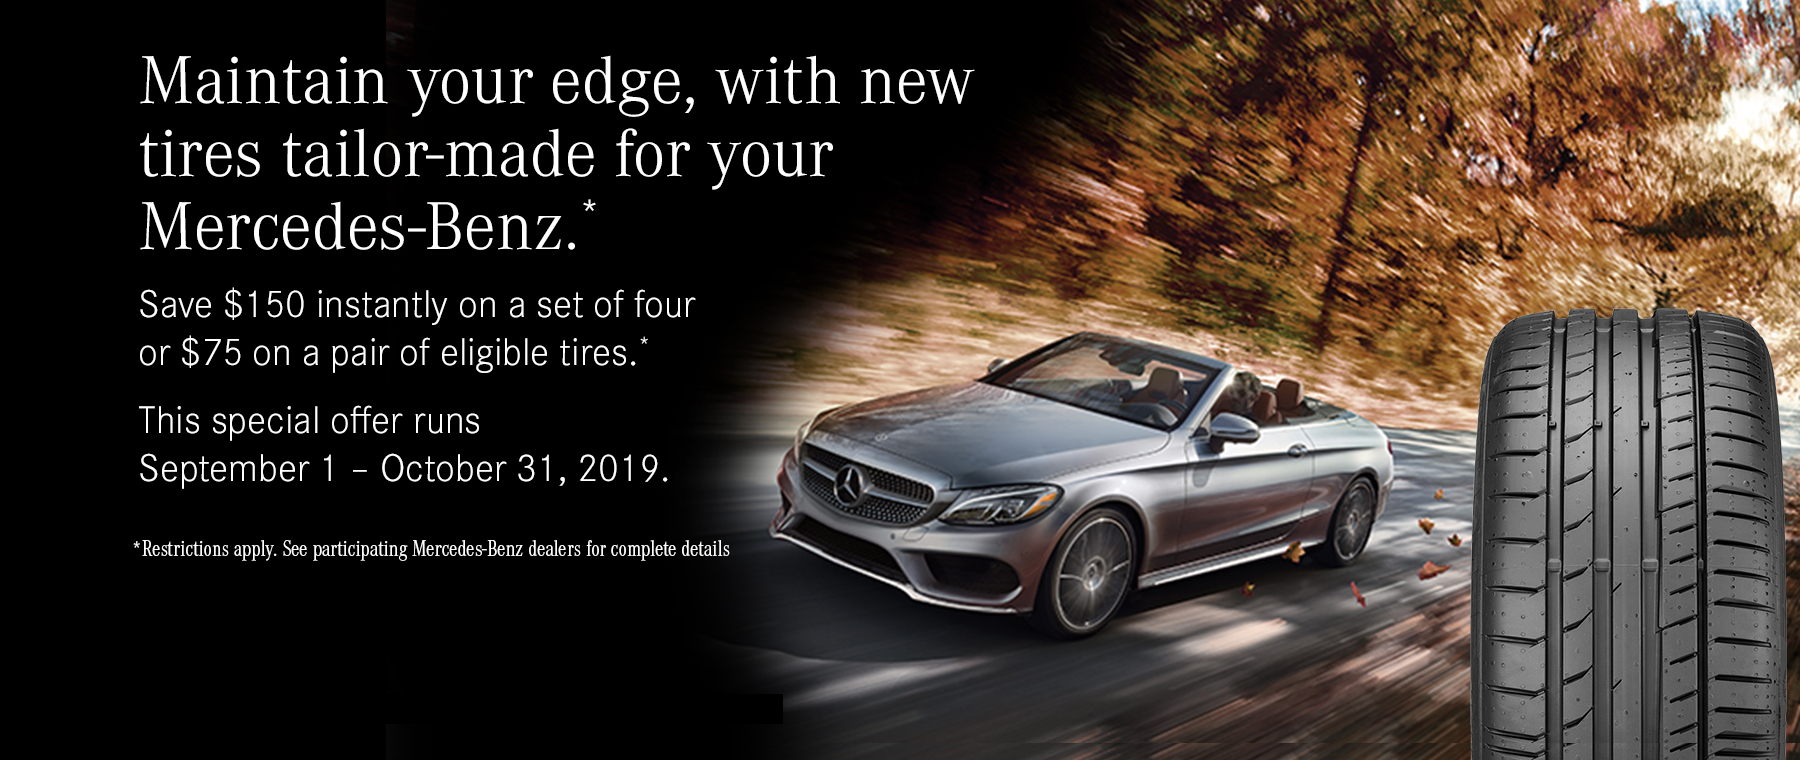 Save $150 on a set of four or $75 on a pair of eligible tires